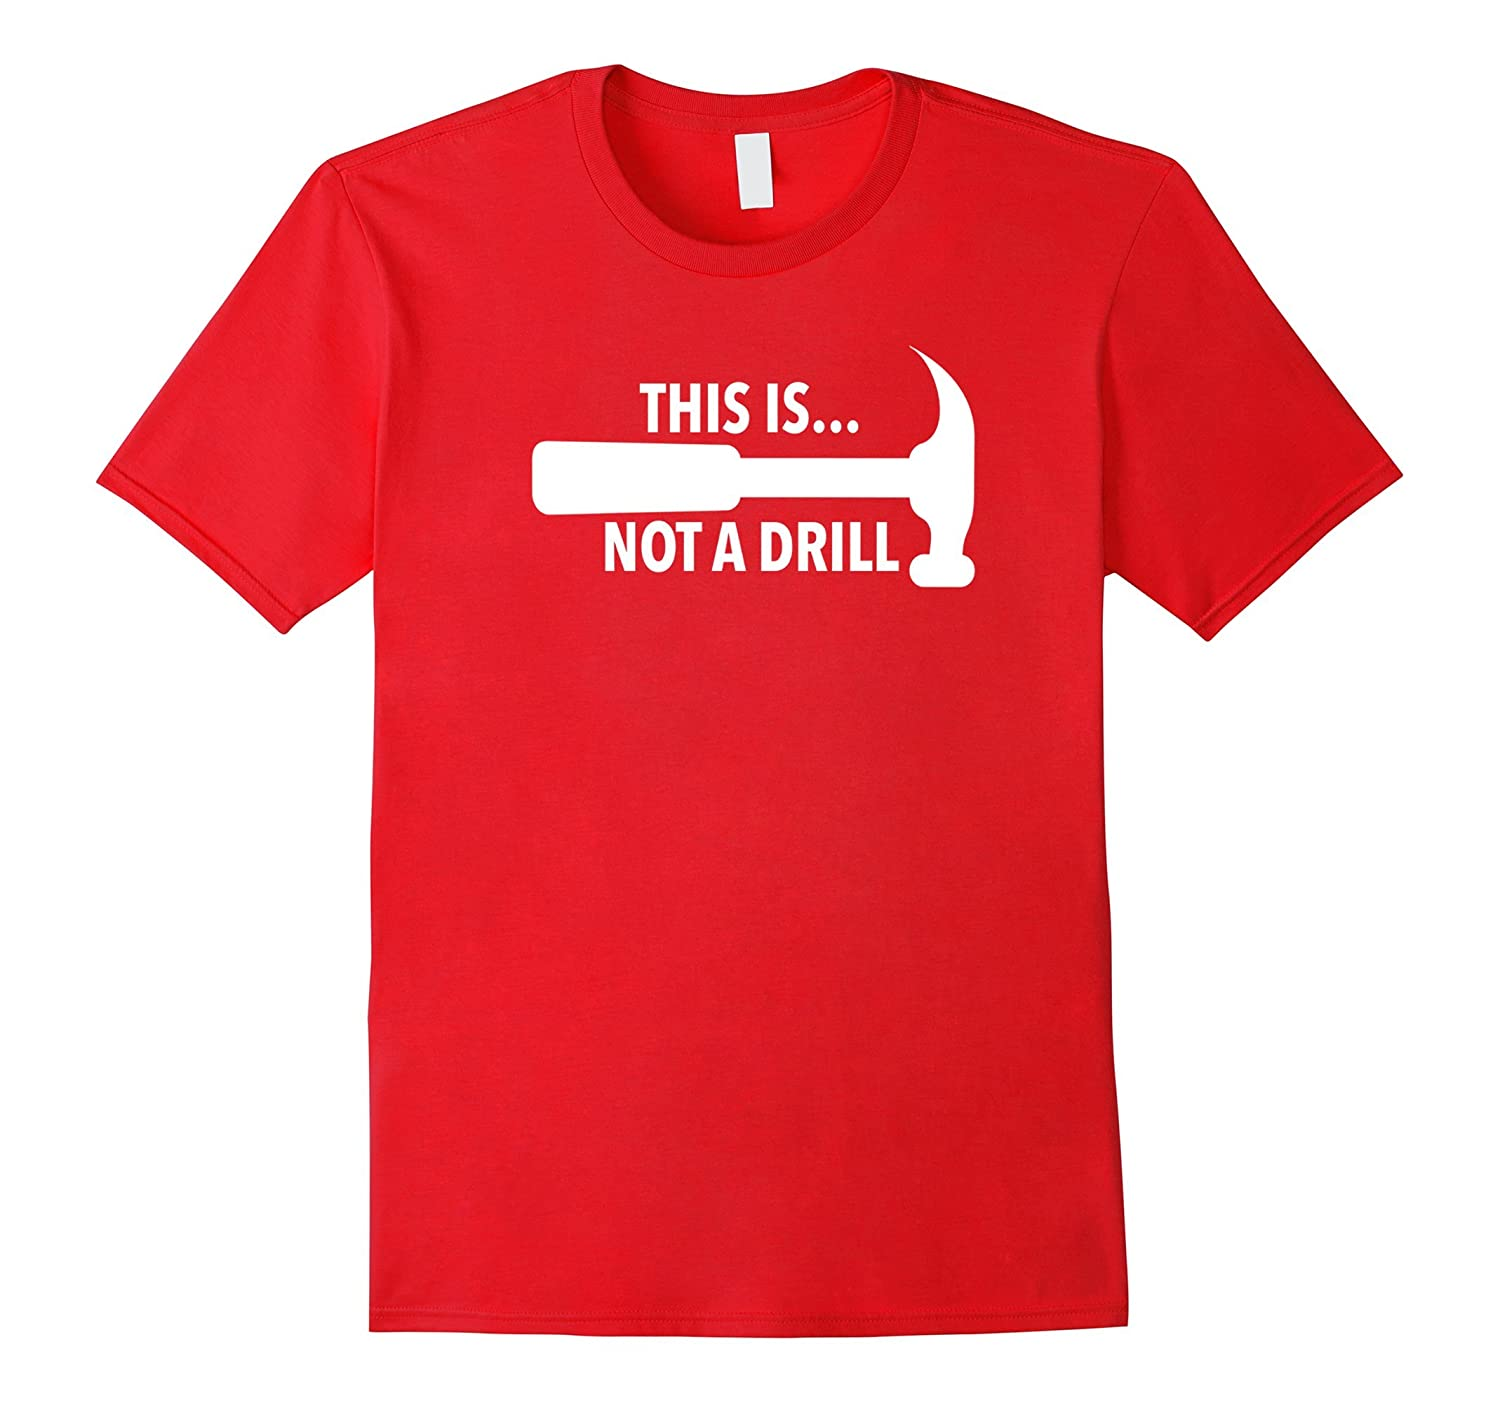 90s Retro This Is Not A Drill Bad Joke T-shirt